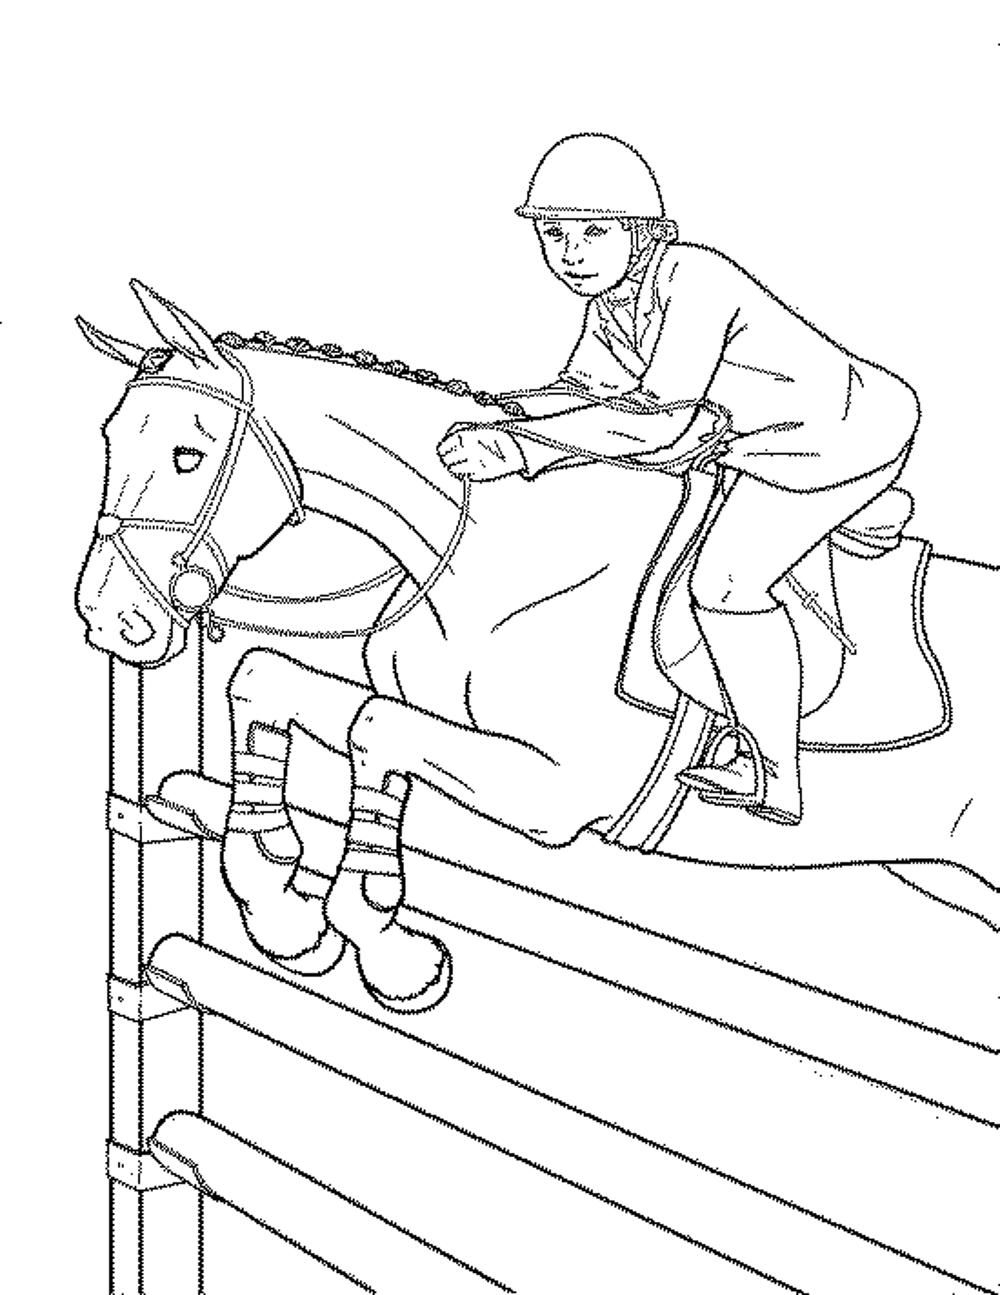 horse show jumping coloring pages show jumping coloring pages at getcoloringscom free pages show coloring jumping horse